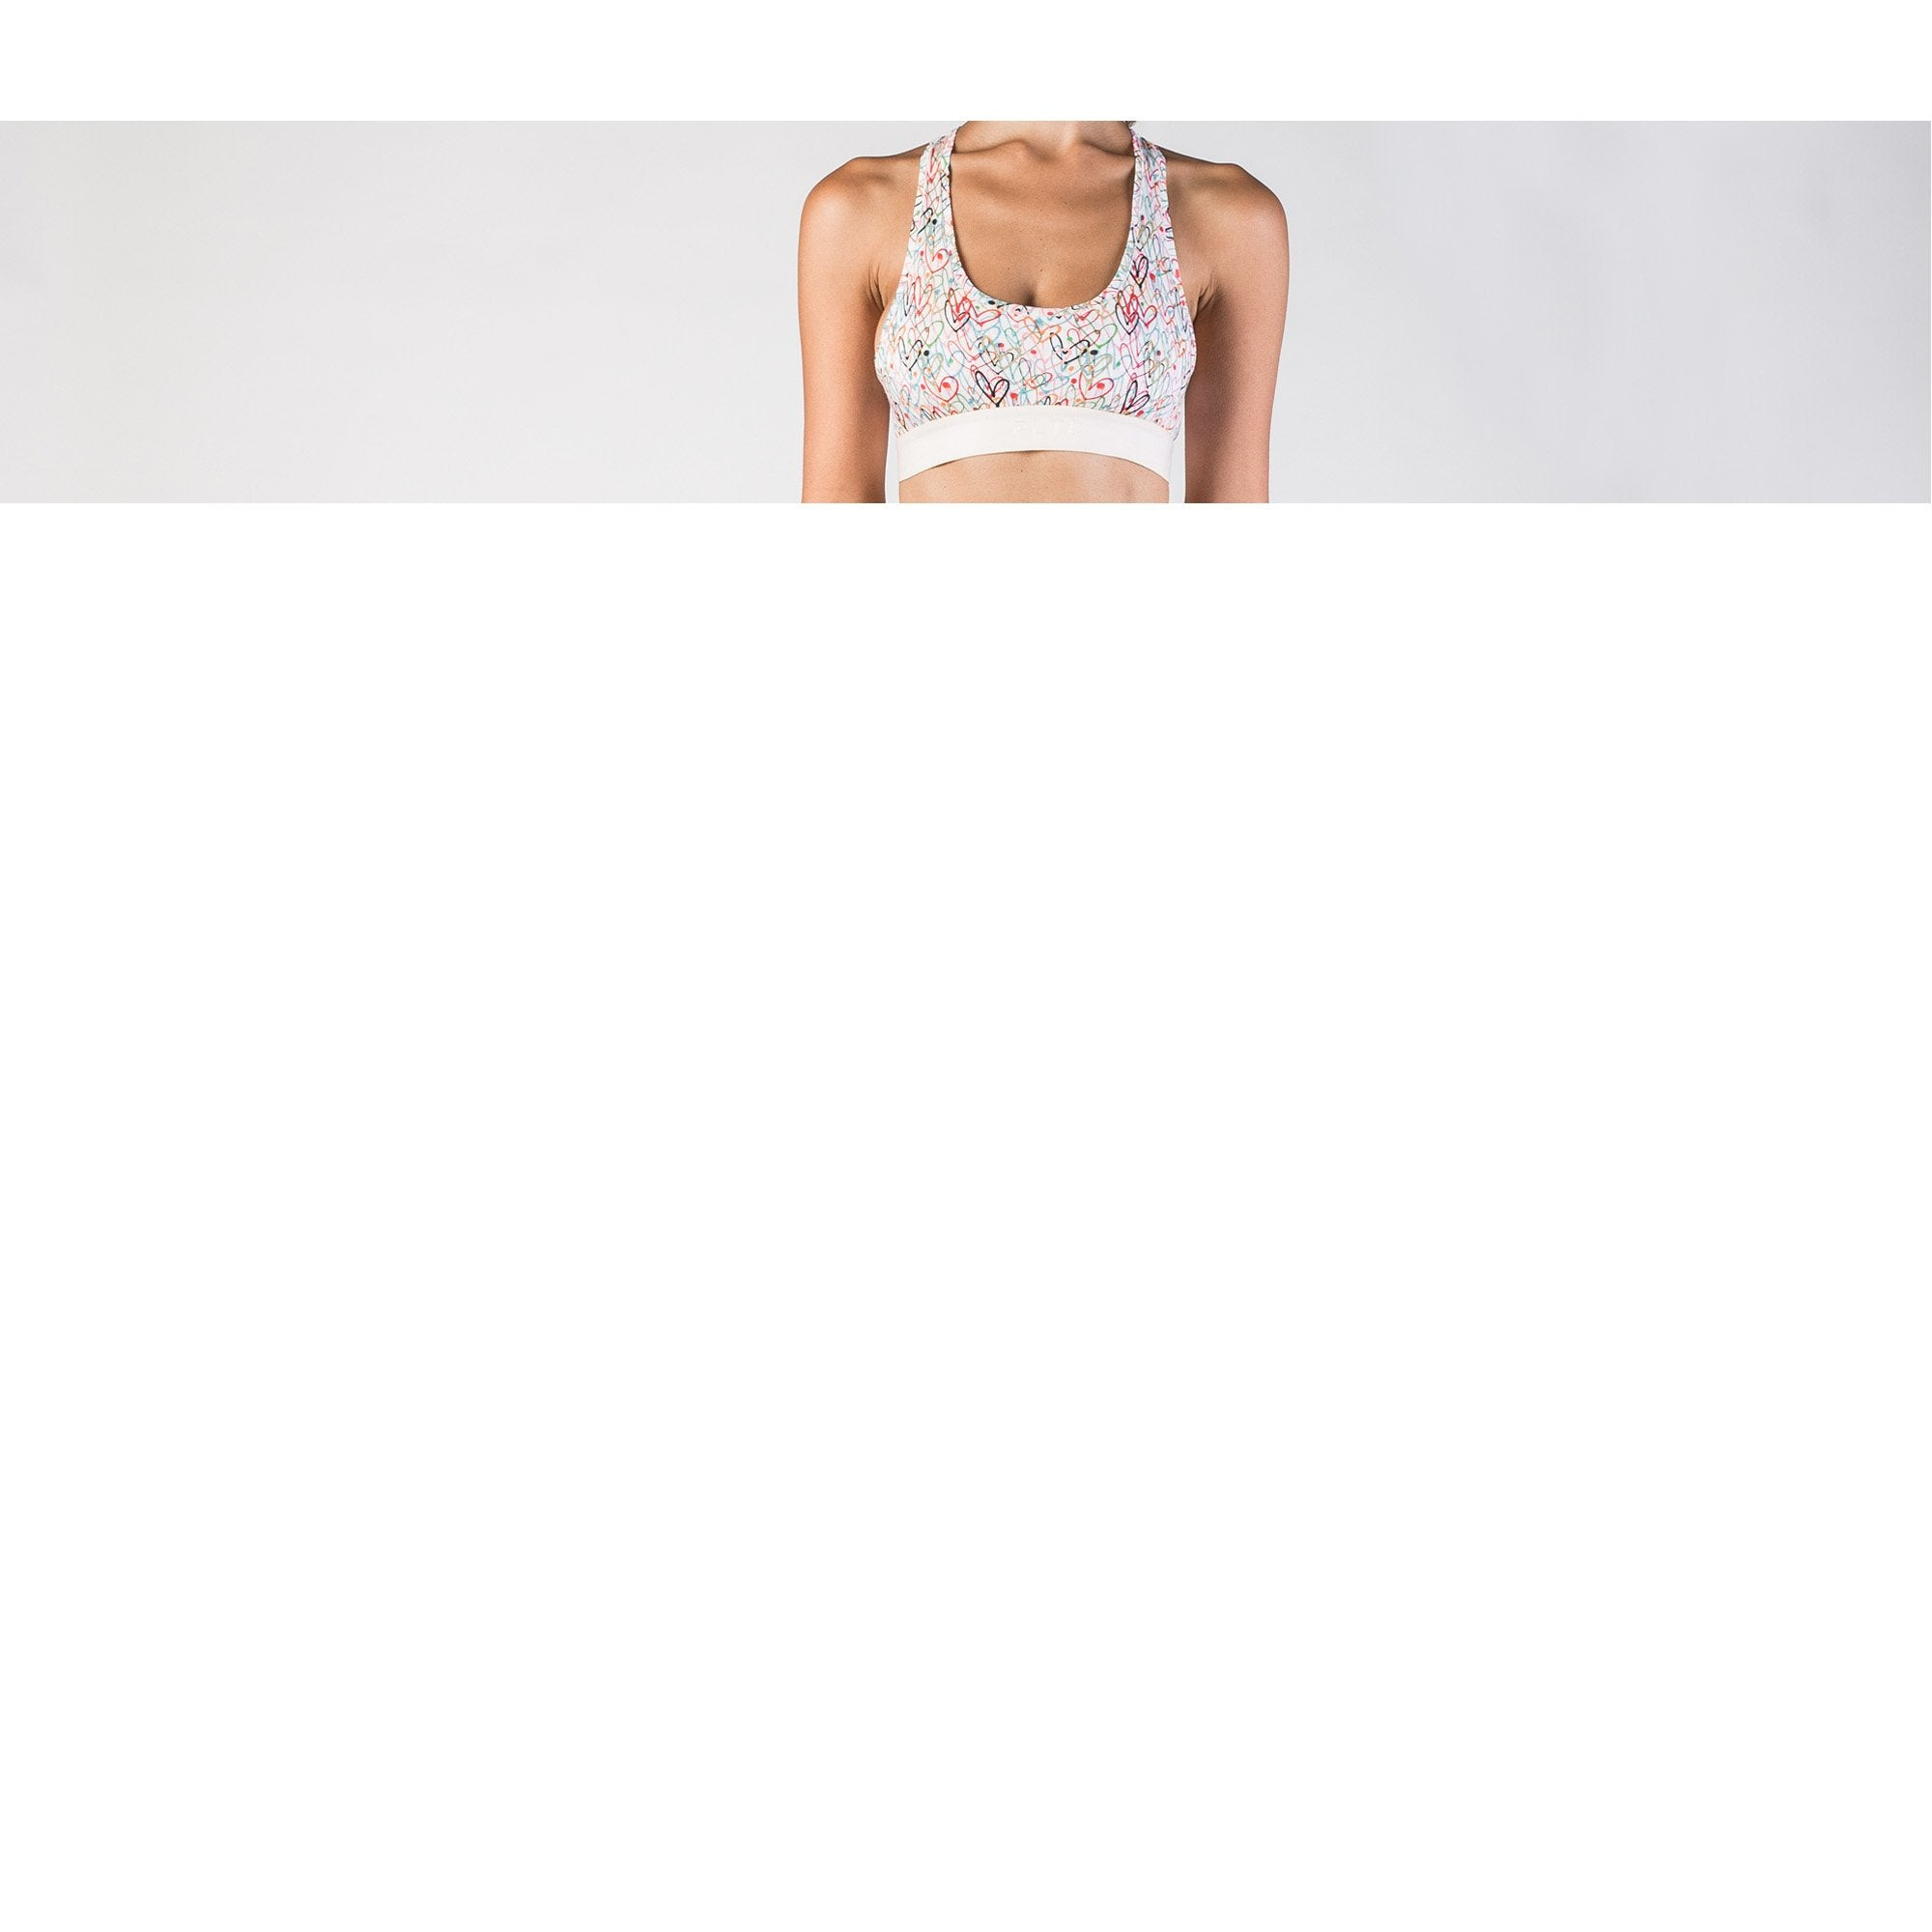 Womens Bralette - James Goldcrown Bralette